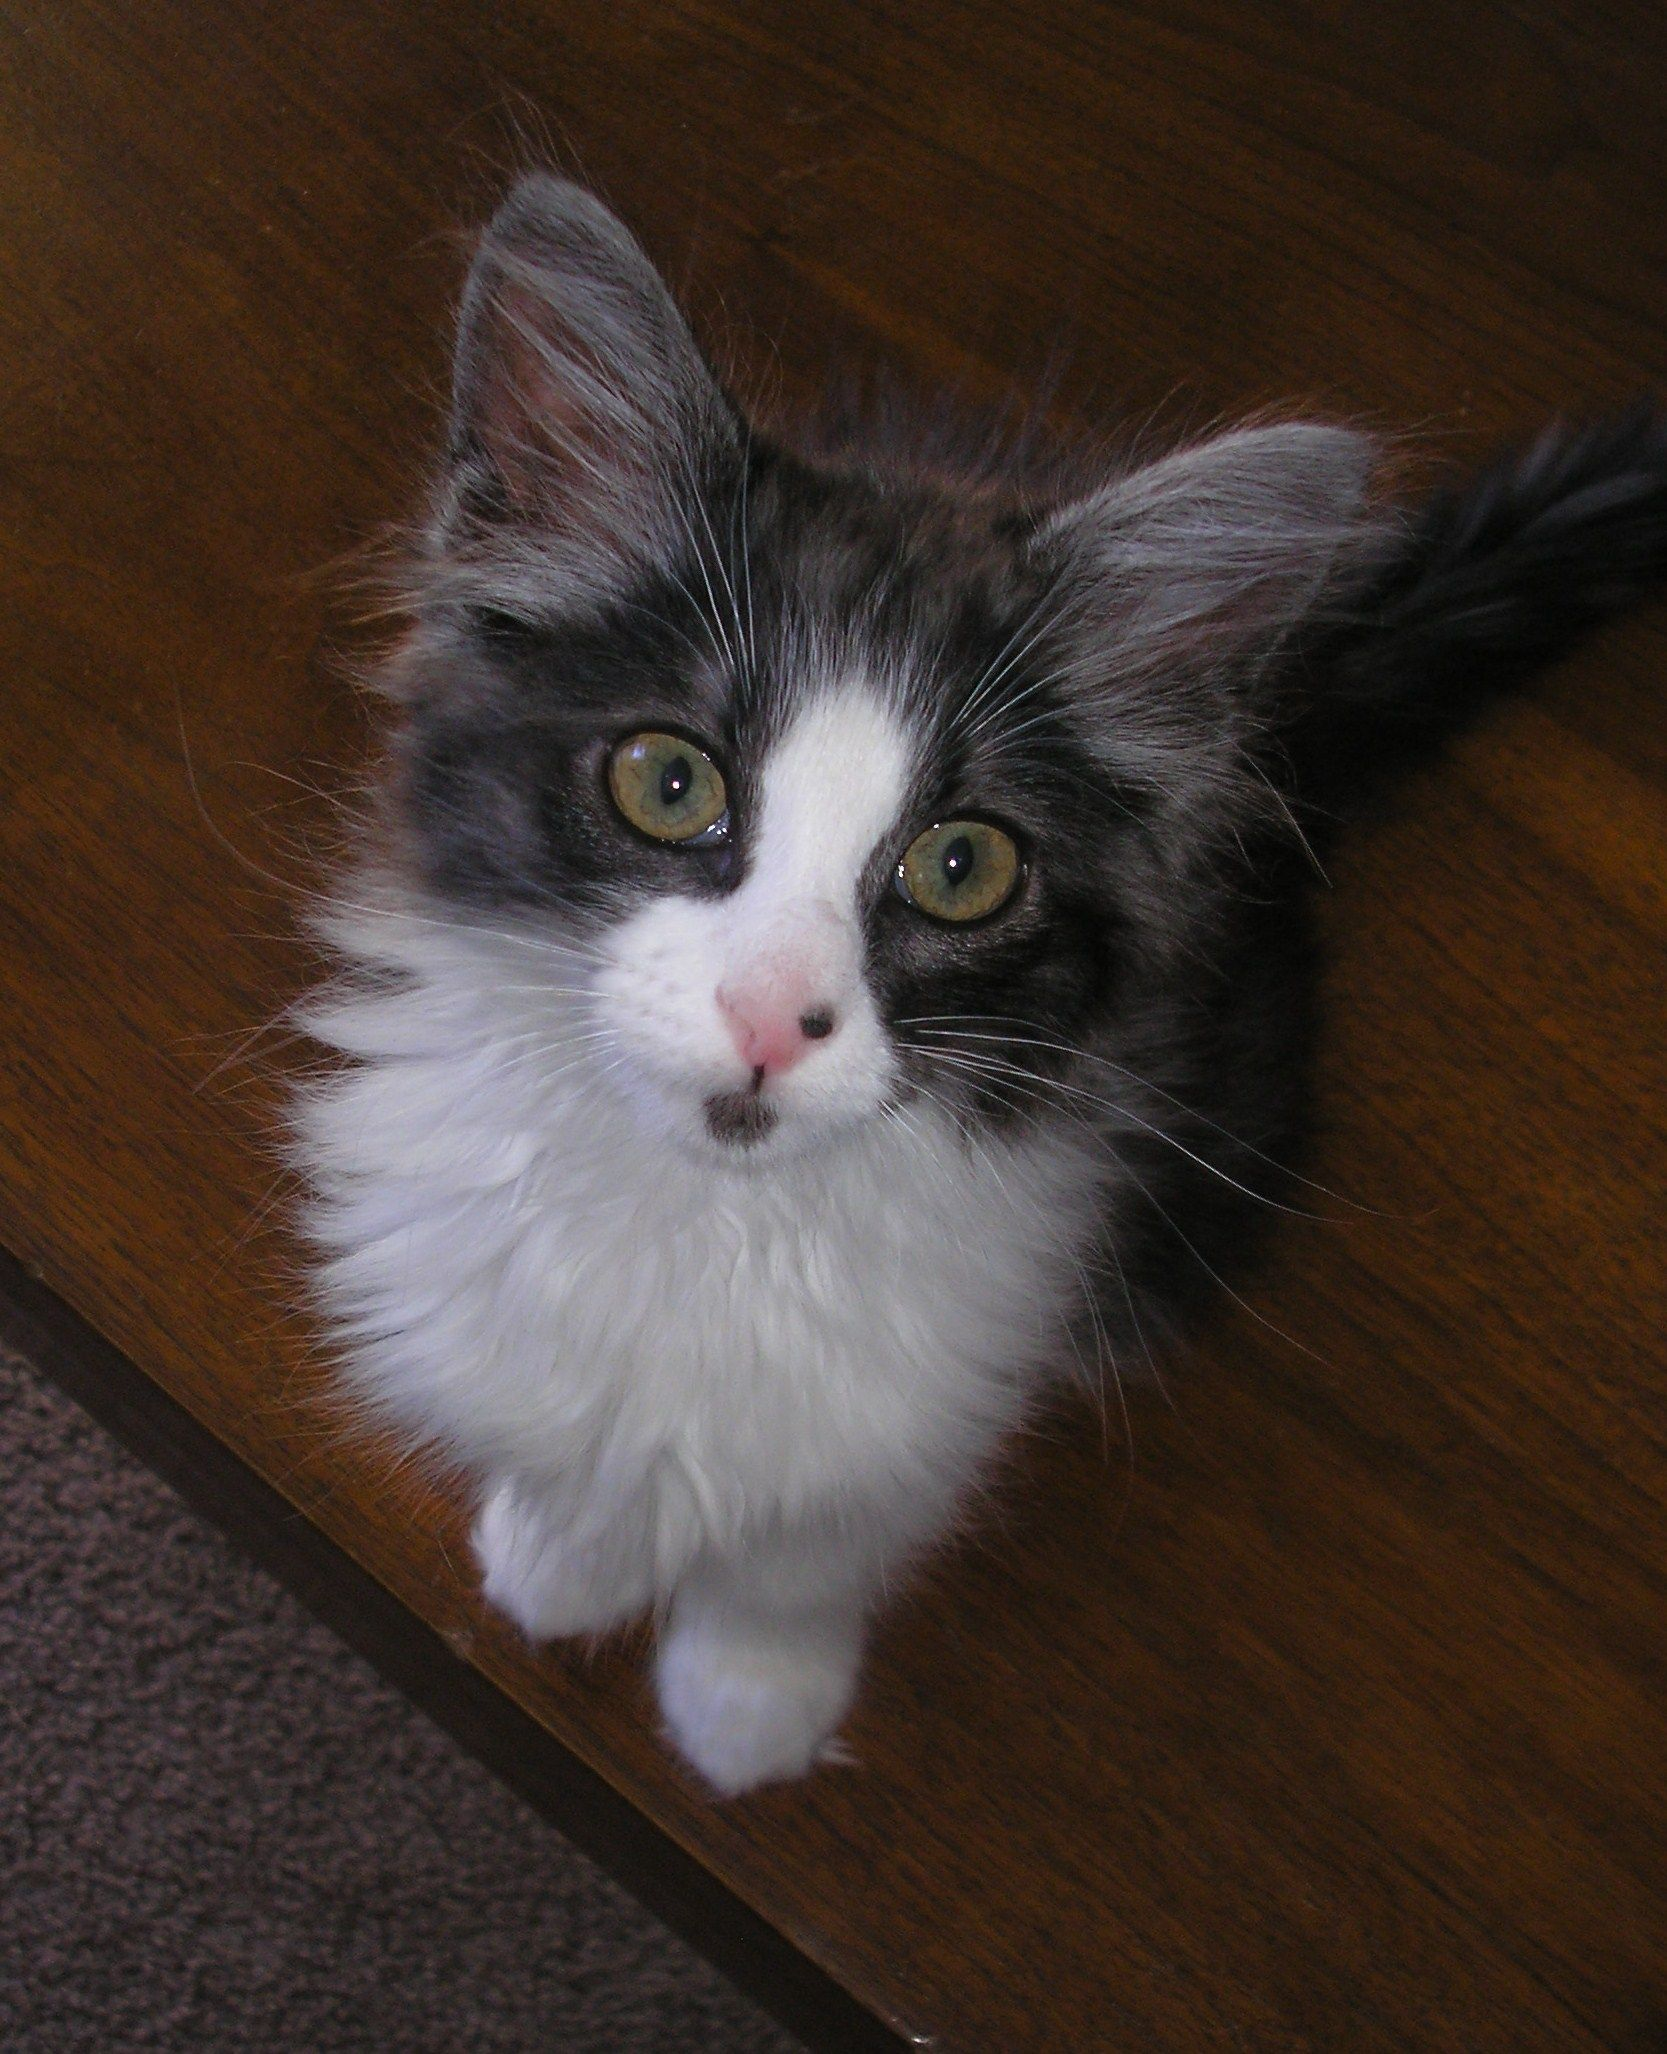 My name is Bear. I am a 4 month old spayed female kitten